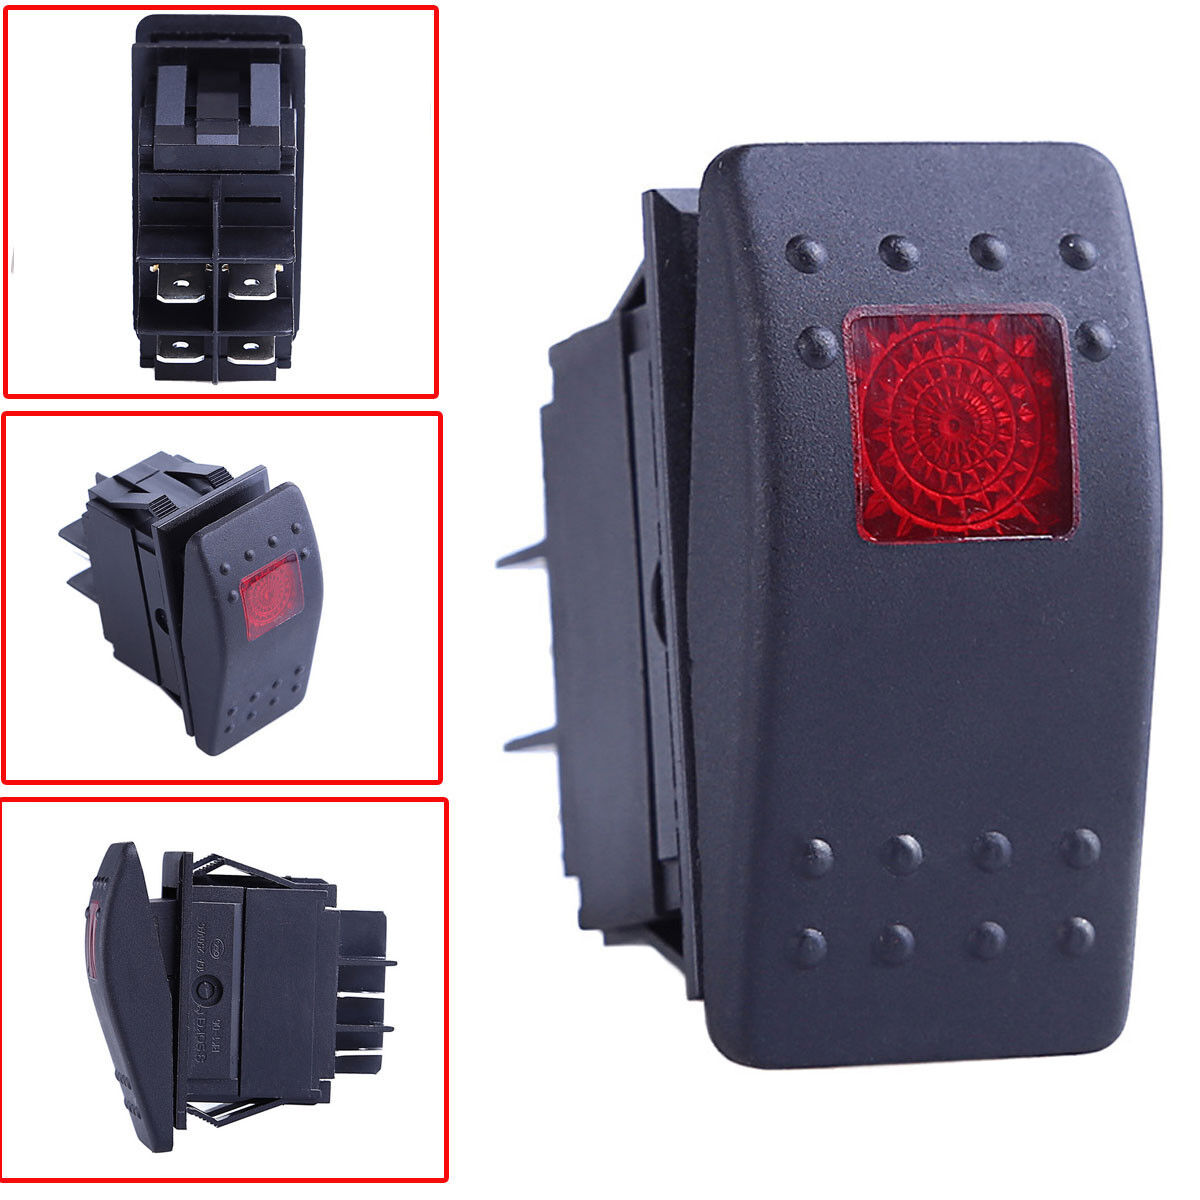 illuminated marine rocker switches 2001 nissan xterra stereo wiring diagram 5x12v led on off 4pin waterproof switch